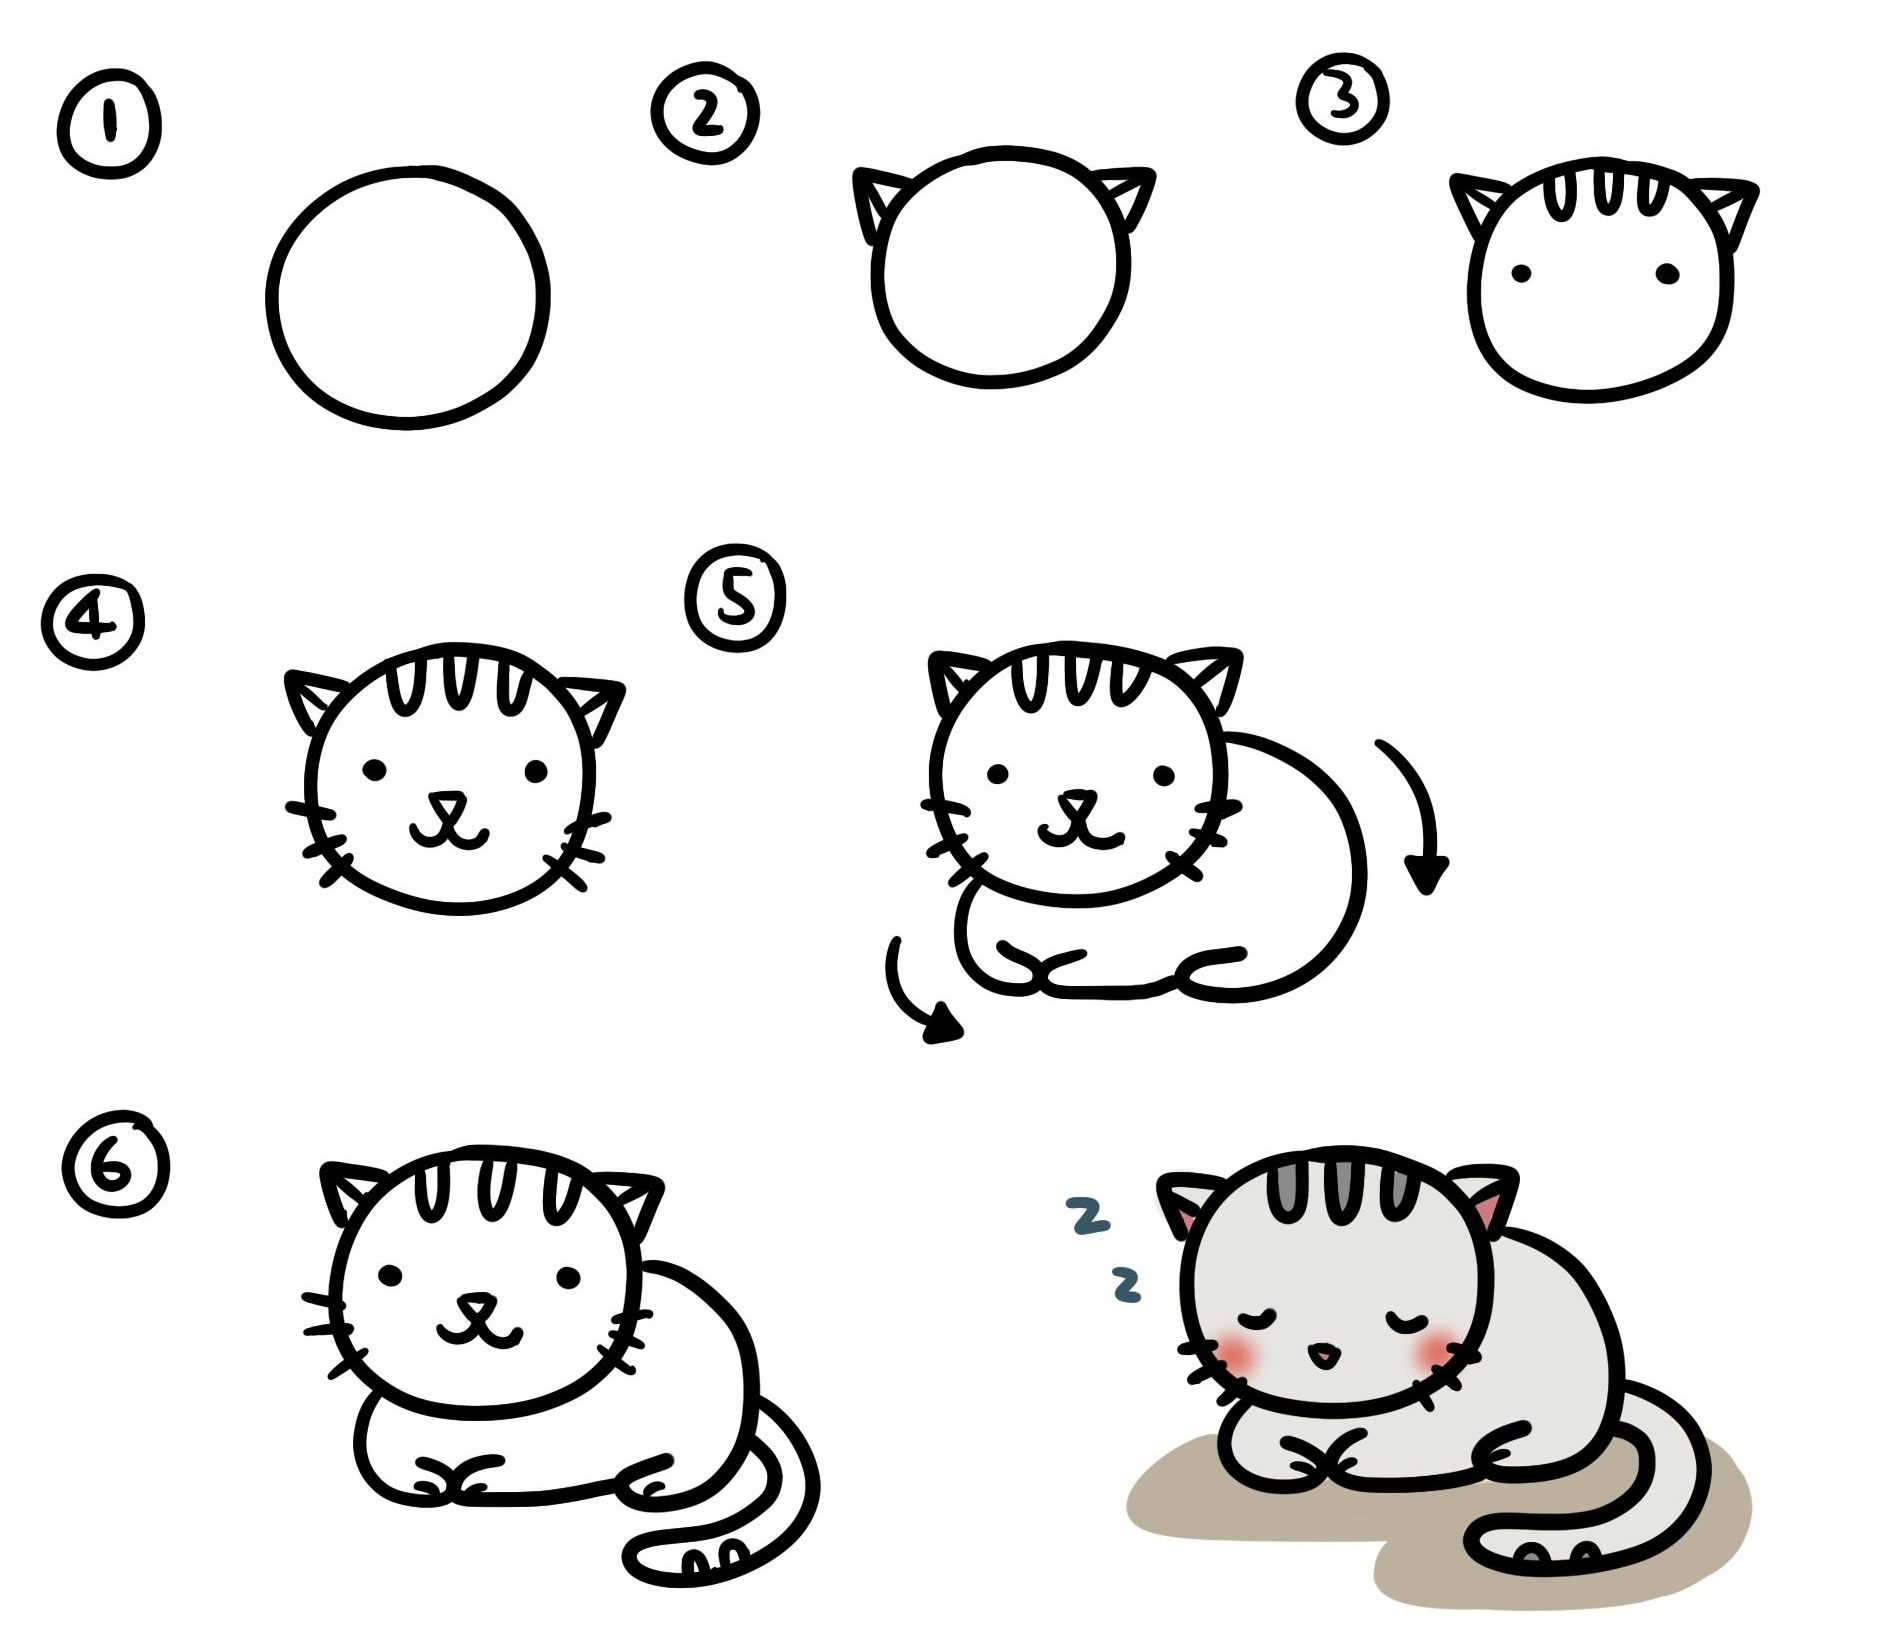 How to draw easy cat cartoon step by step